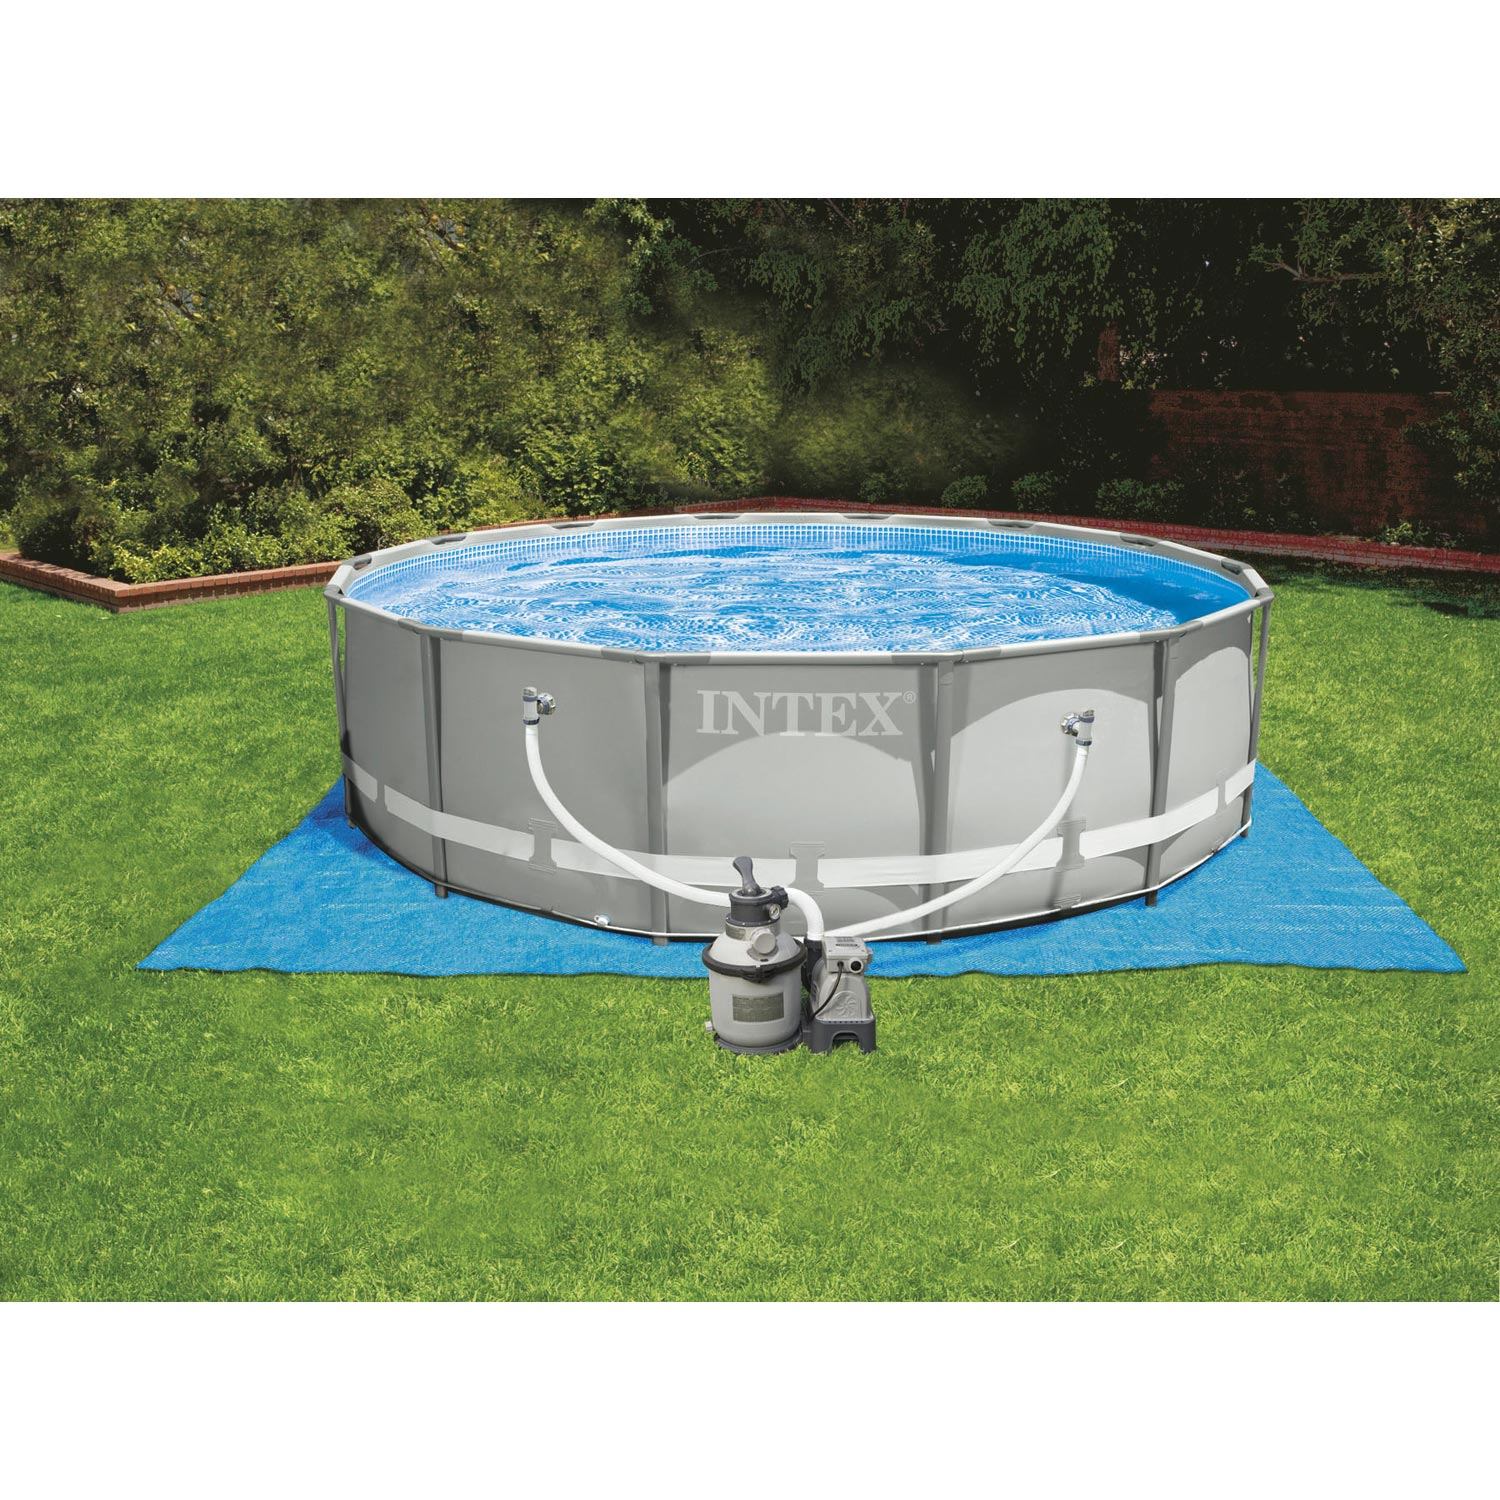 Piscine hors sol autoportante tubulaire ultra frame intex for Piscine auchan tubulaire